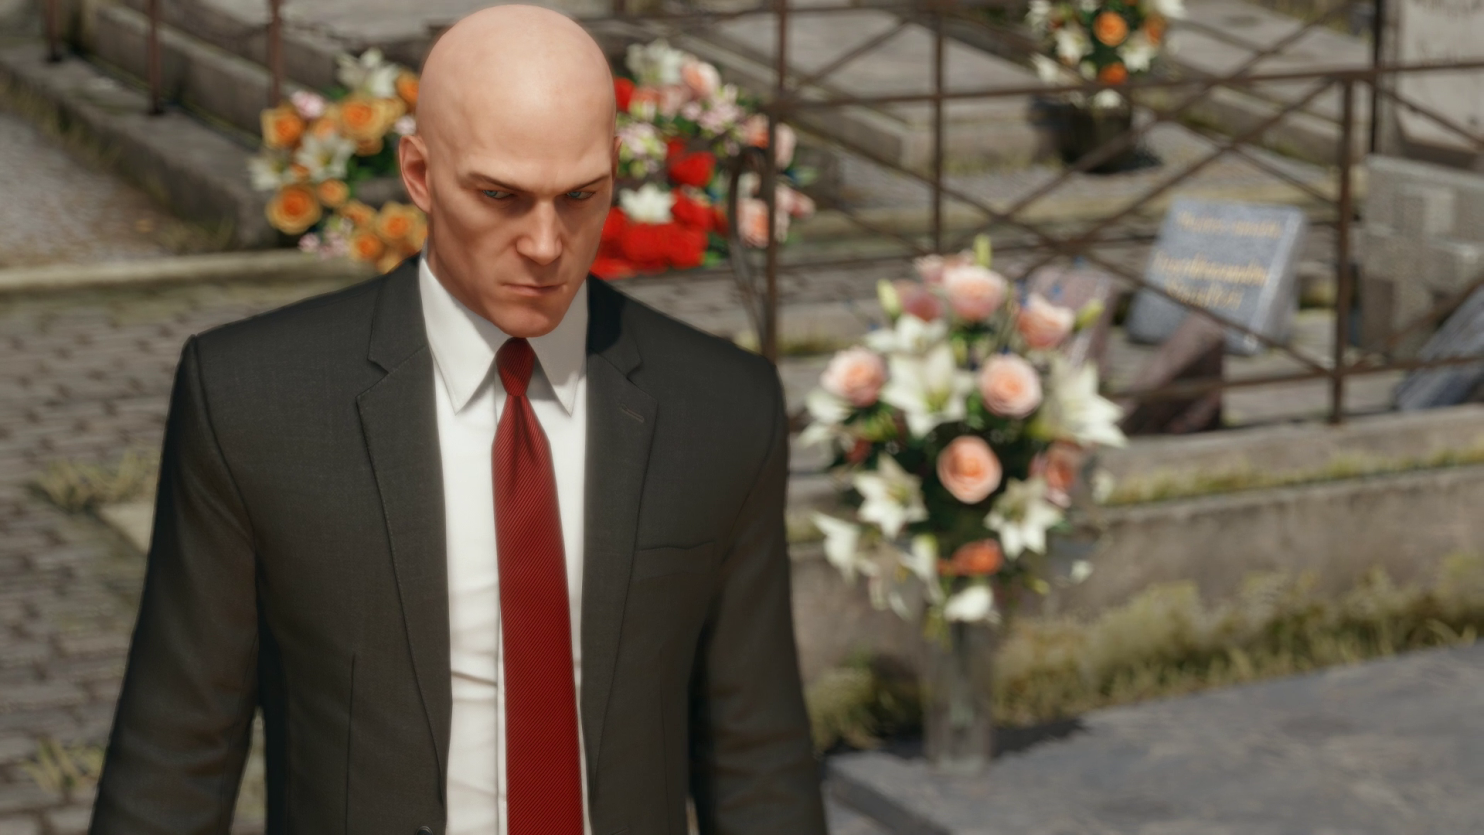 hitman-trailer-shows-off-sunny-new-sapienza-location-144611699716